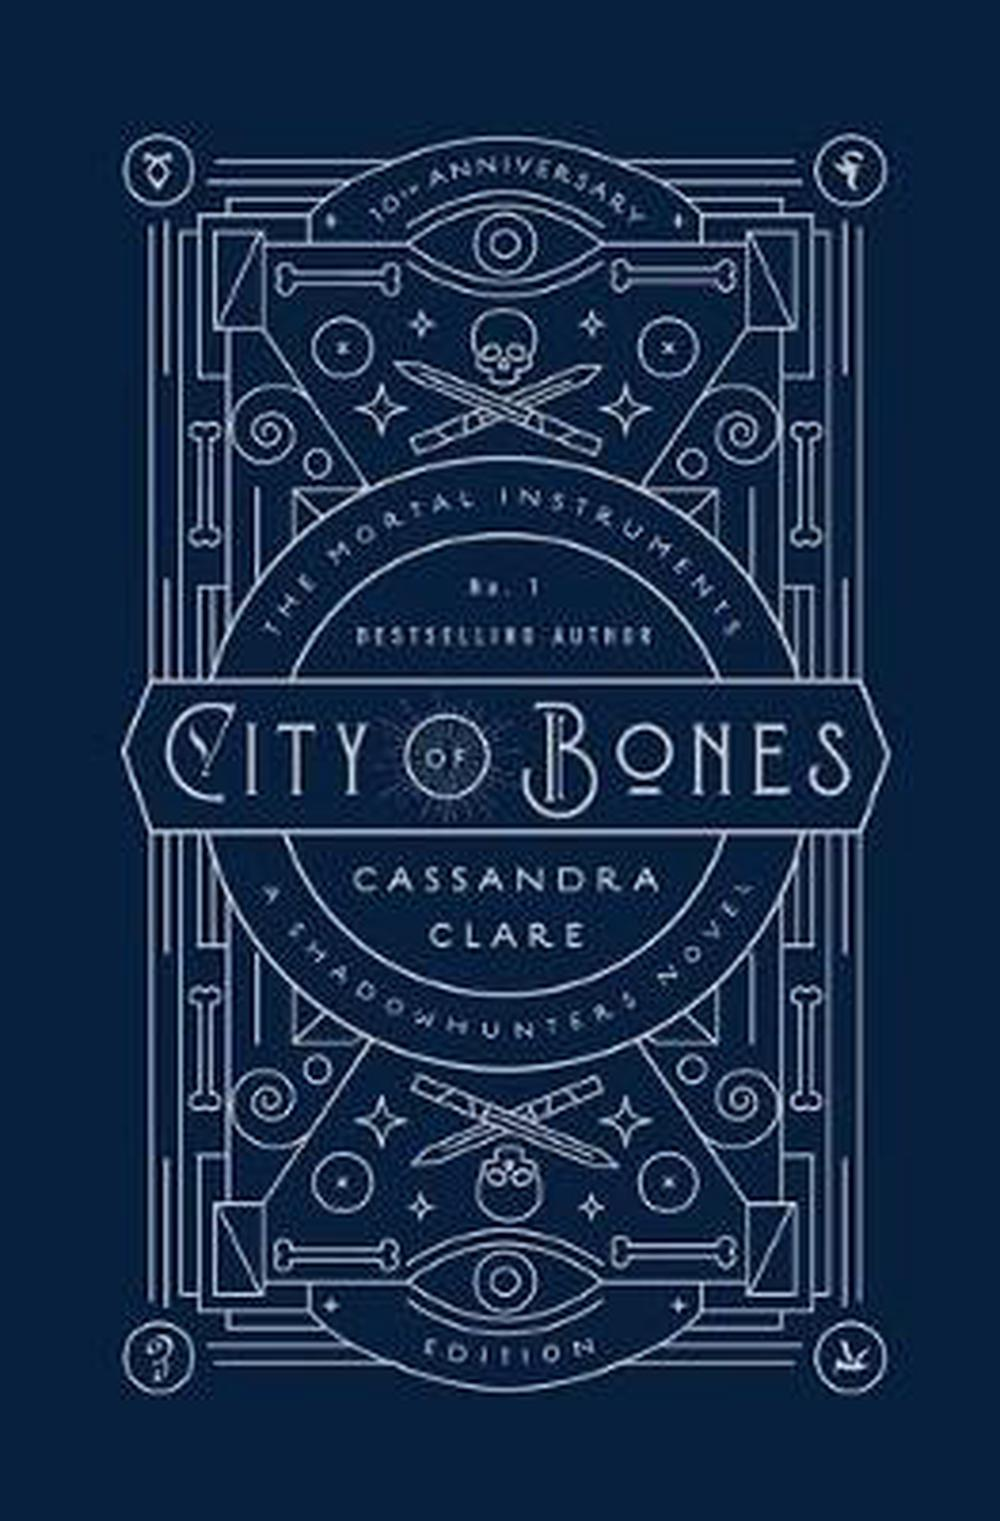 City of Bones: 10th Anniversary Edition (Mortal Instruments)